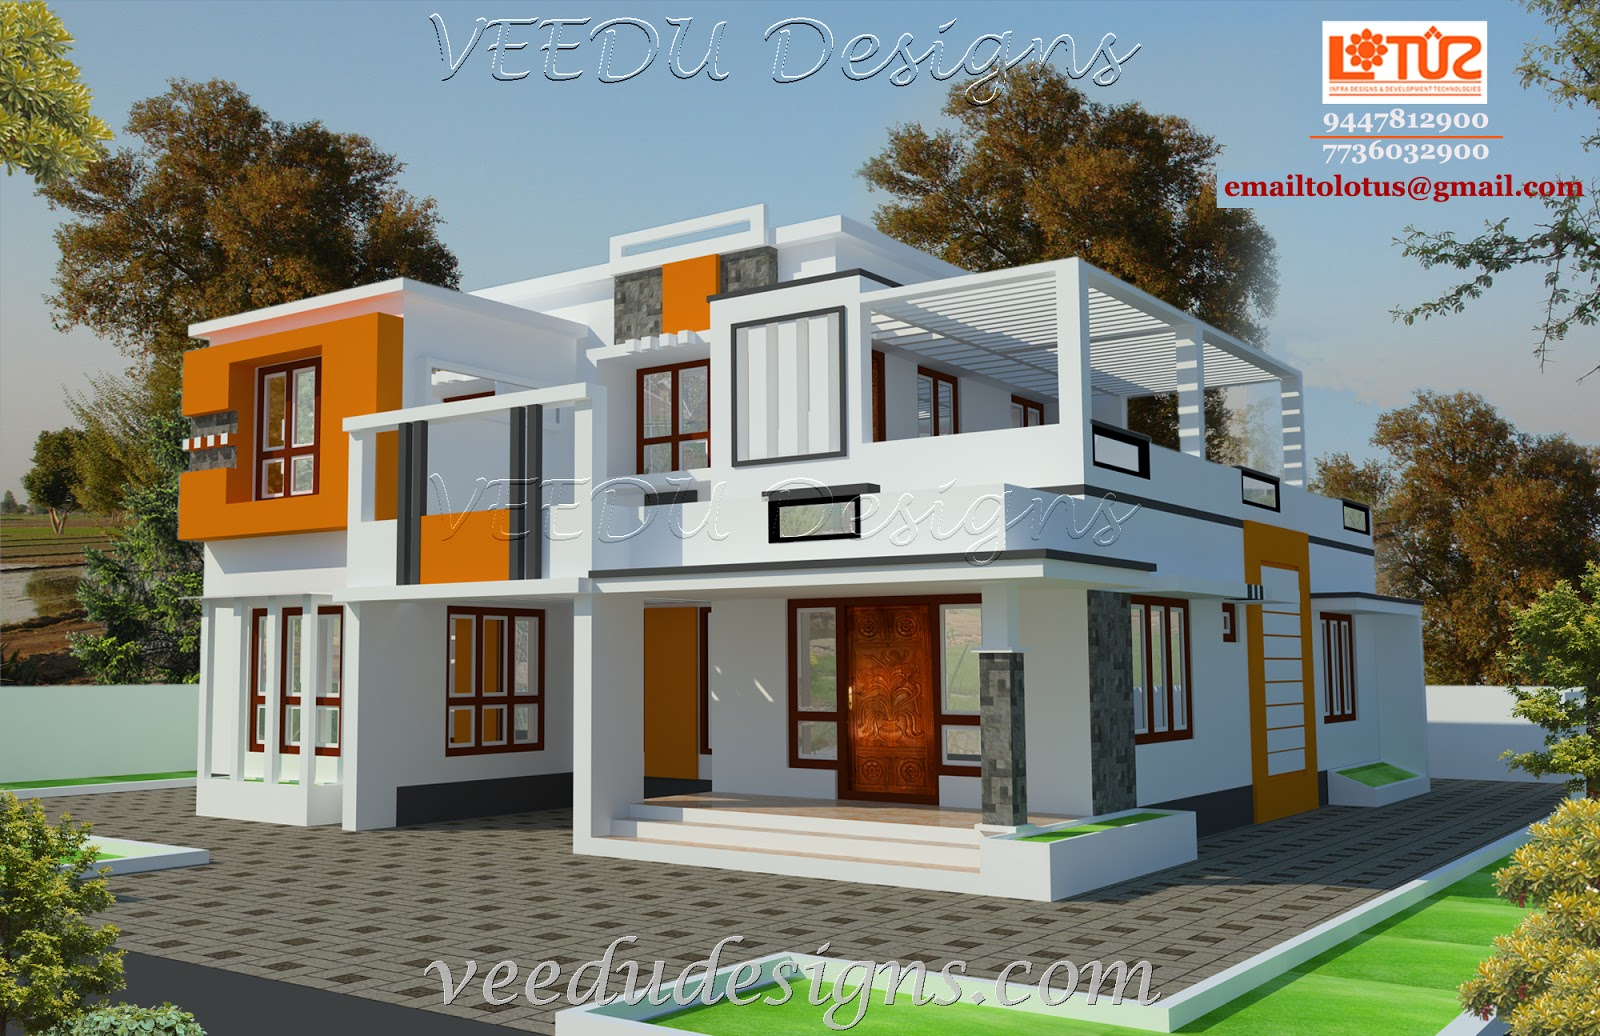 Veedu designs kerala home designs for Home house design